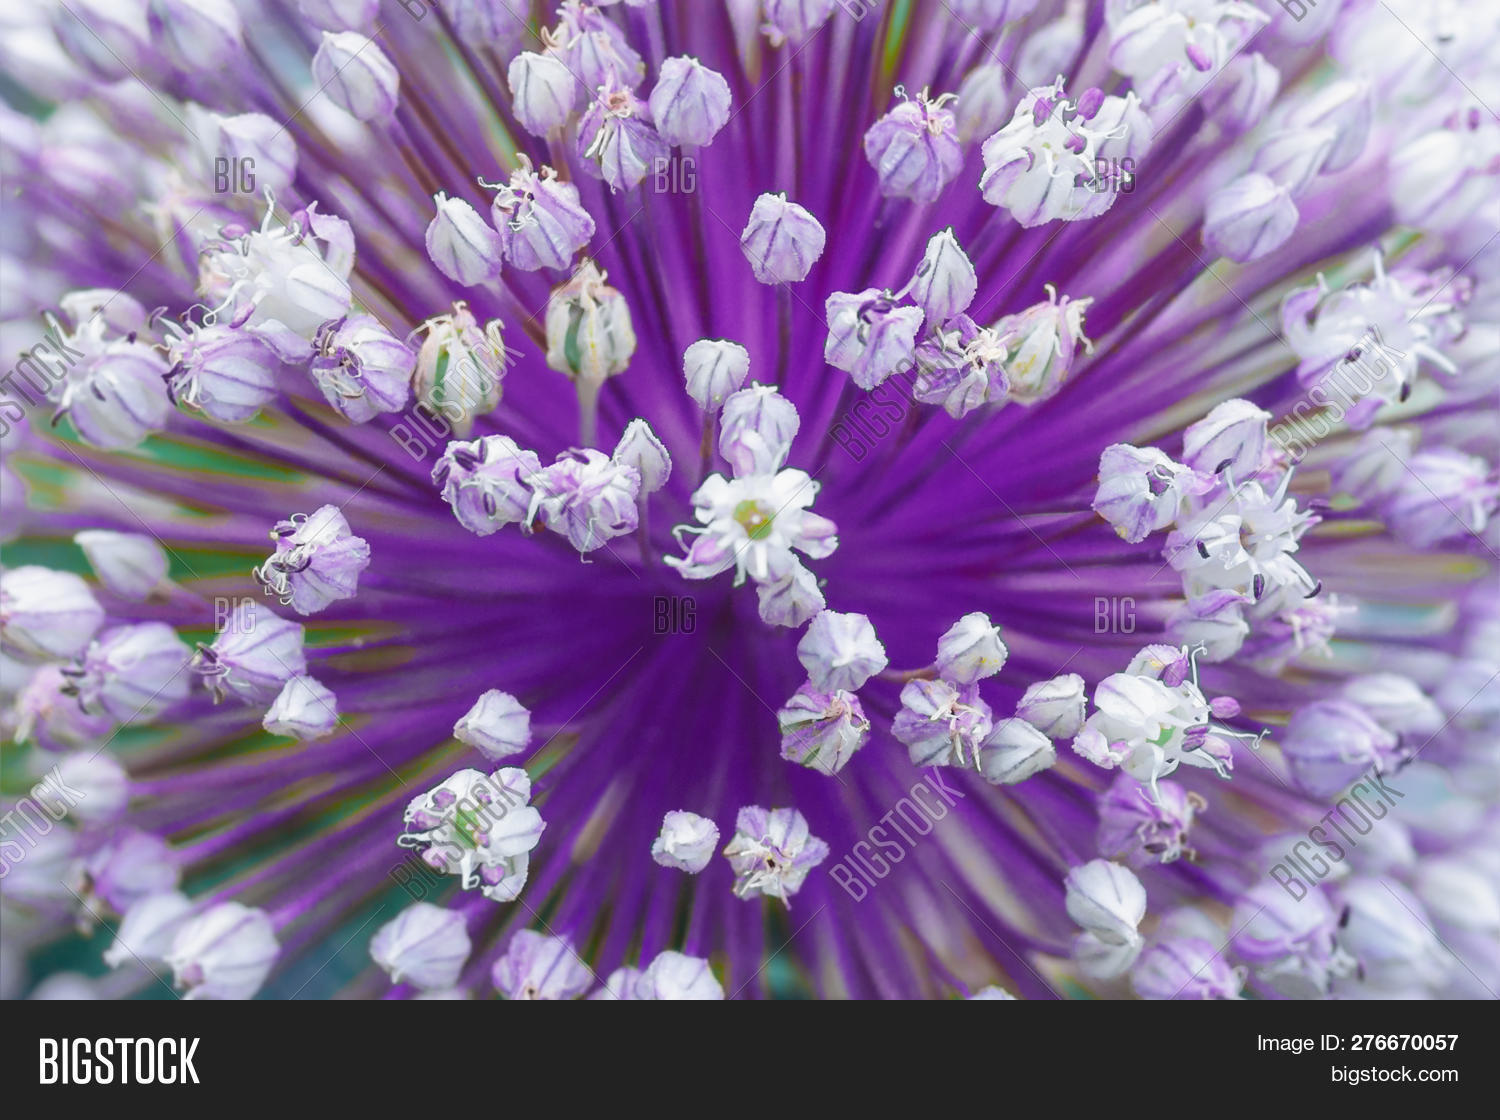 allium,art,background,ball,beautiful,beauty,bee,big,bloom,blooming,blossom,bud,christophii,close-up,closeup,colorful,decorative,edible,environment,flora,floral,flower,food,fresh,garden,garlic,giant,green,head,horizontal,macro,natural,nature,onion,organic,outdoor,park,photo,photography,pink,plant,product,purple,seed,spice,spring,stalk,summer,violet